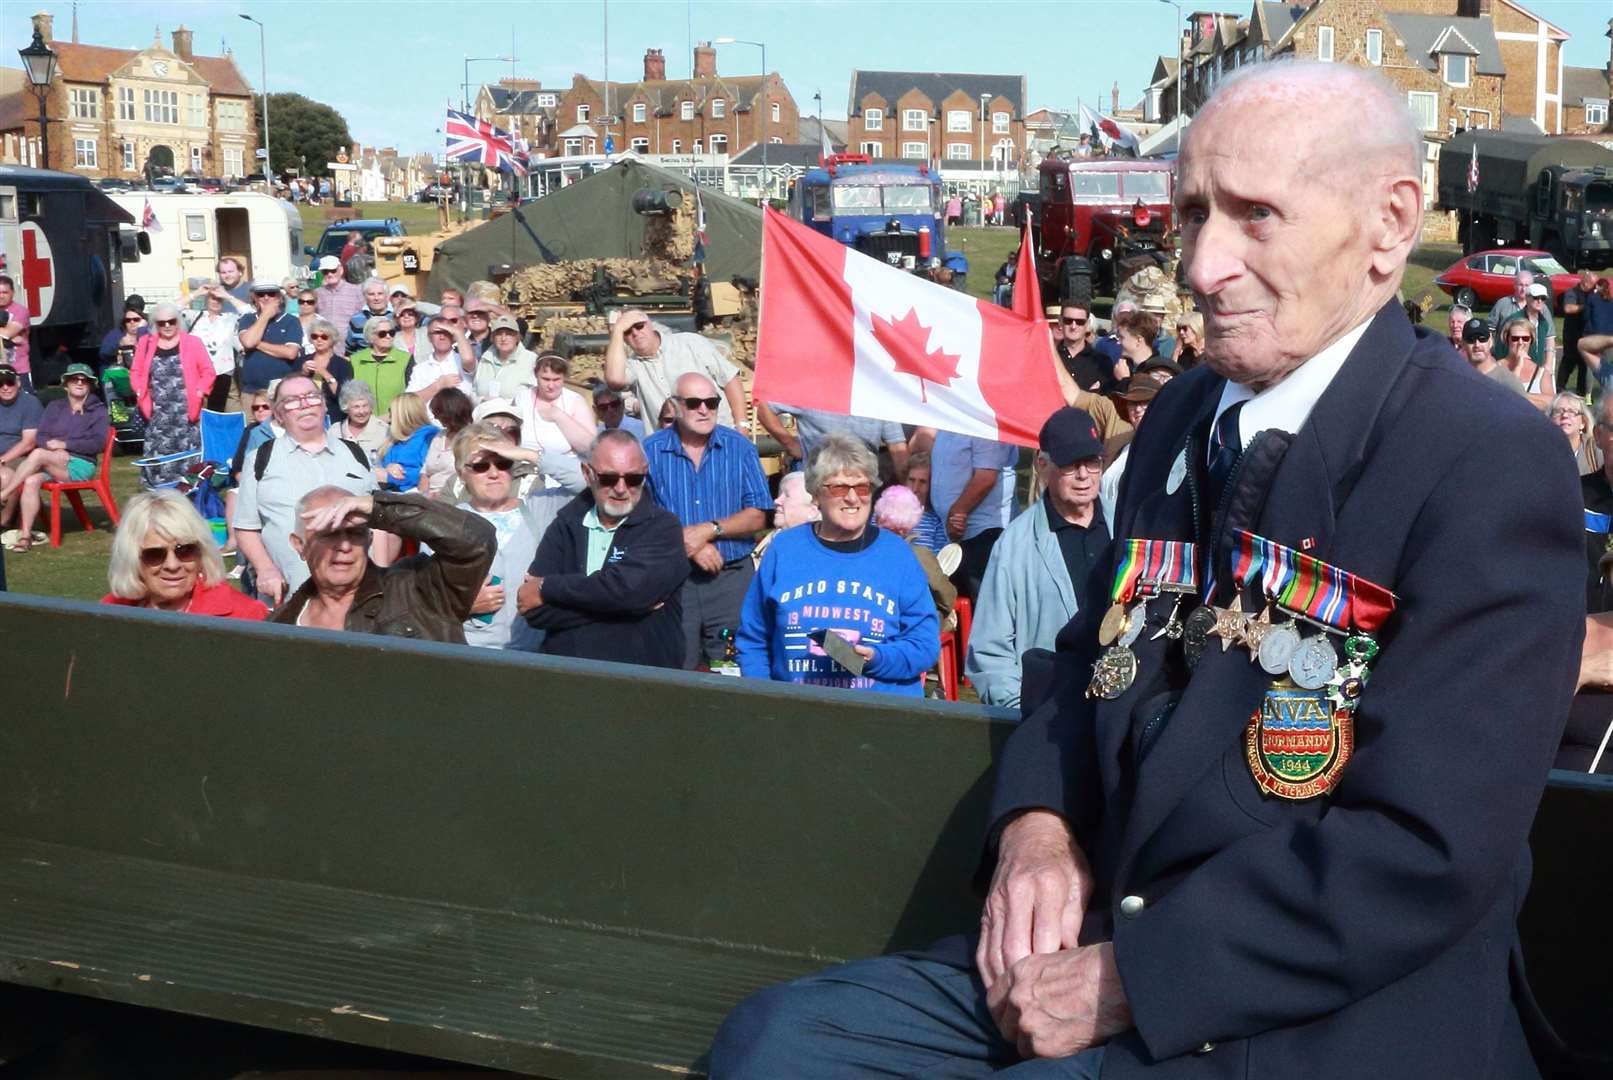 World War II veteran Ernie Covill at the Hunstanton Green Military Weekend.Photo by Chris Carter.